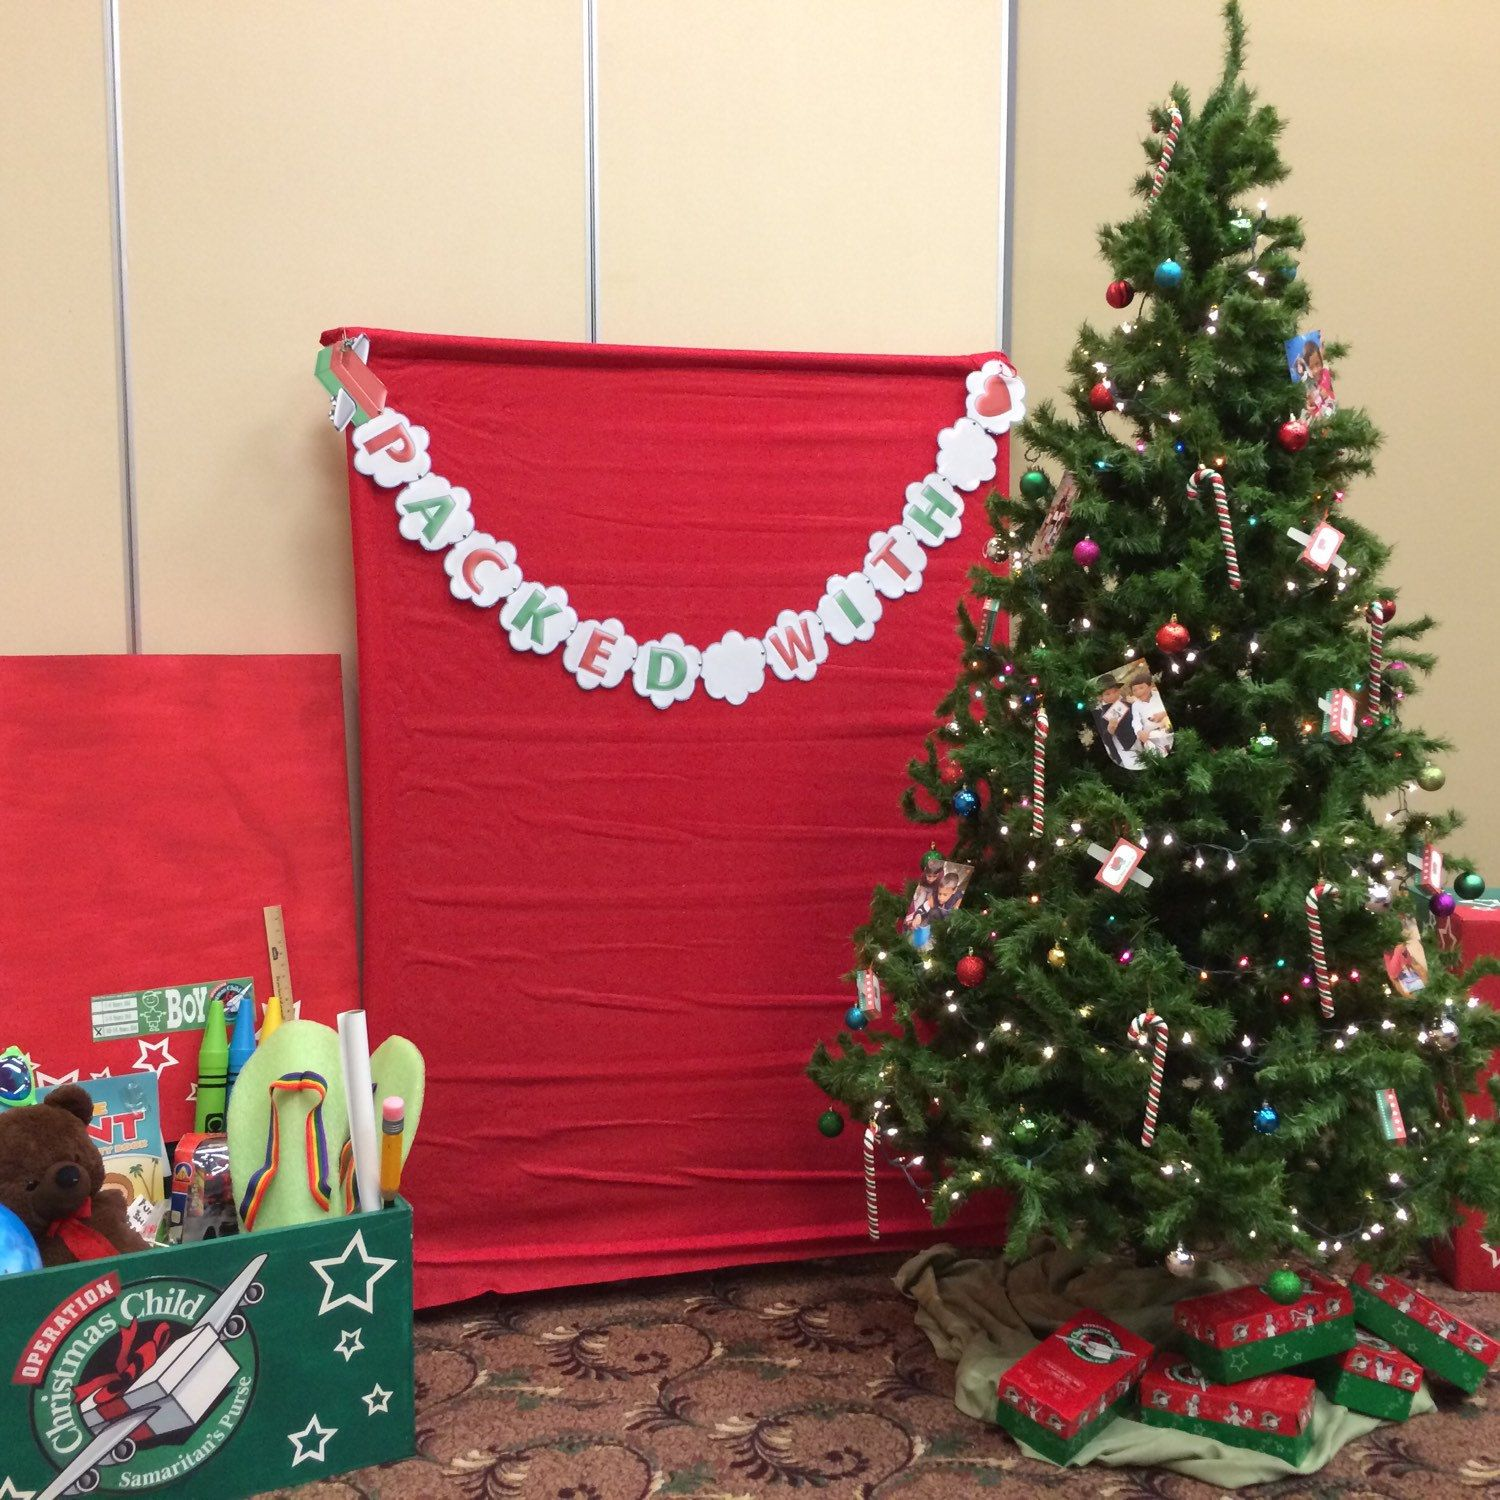 Our Shoebox Packing Party Banner was on display at a